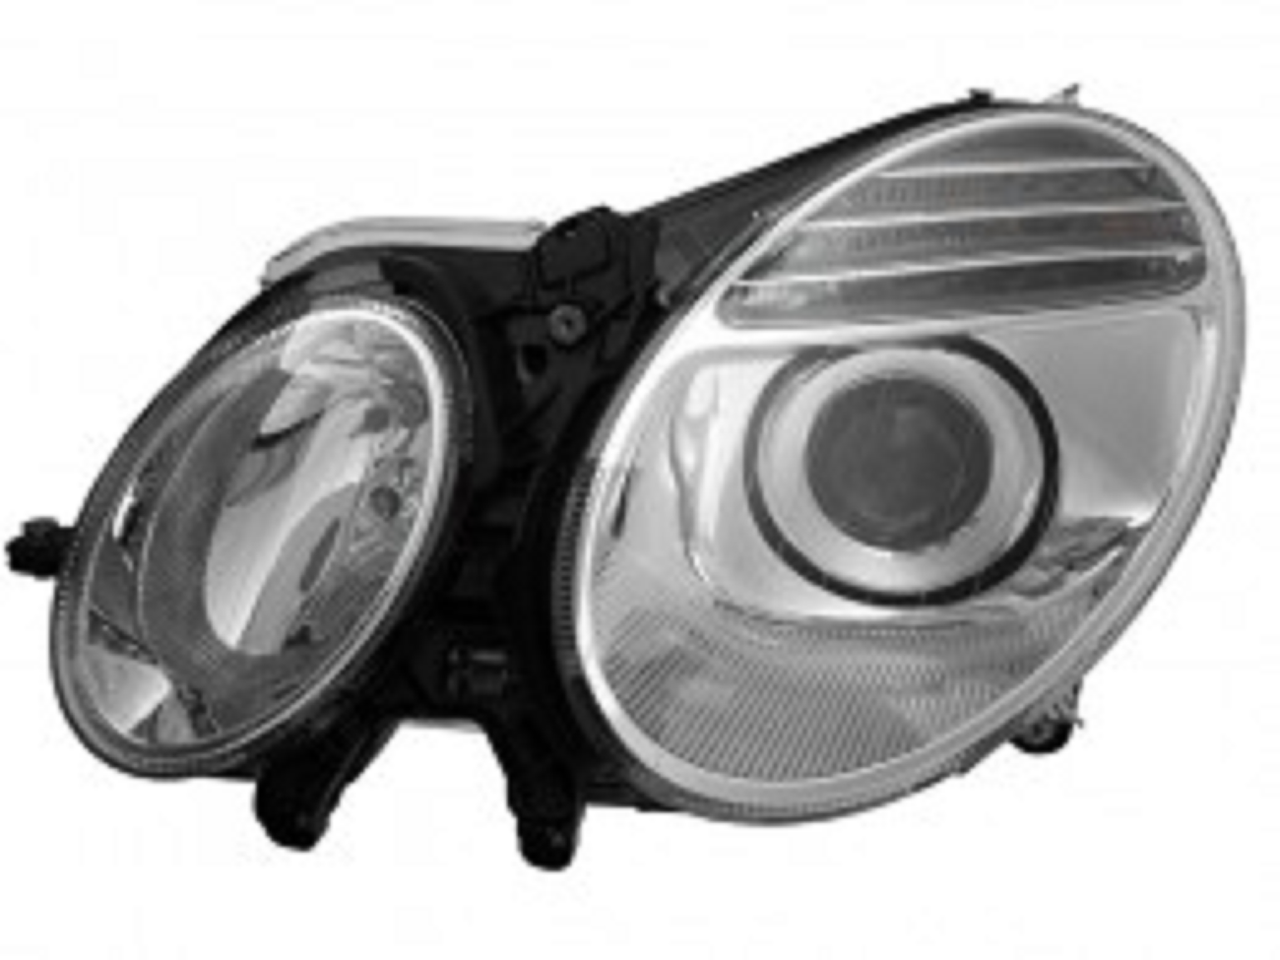 Mercedes Benz E class W211 sedan & wagon 2007 2008 2009 left driver HID headlight